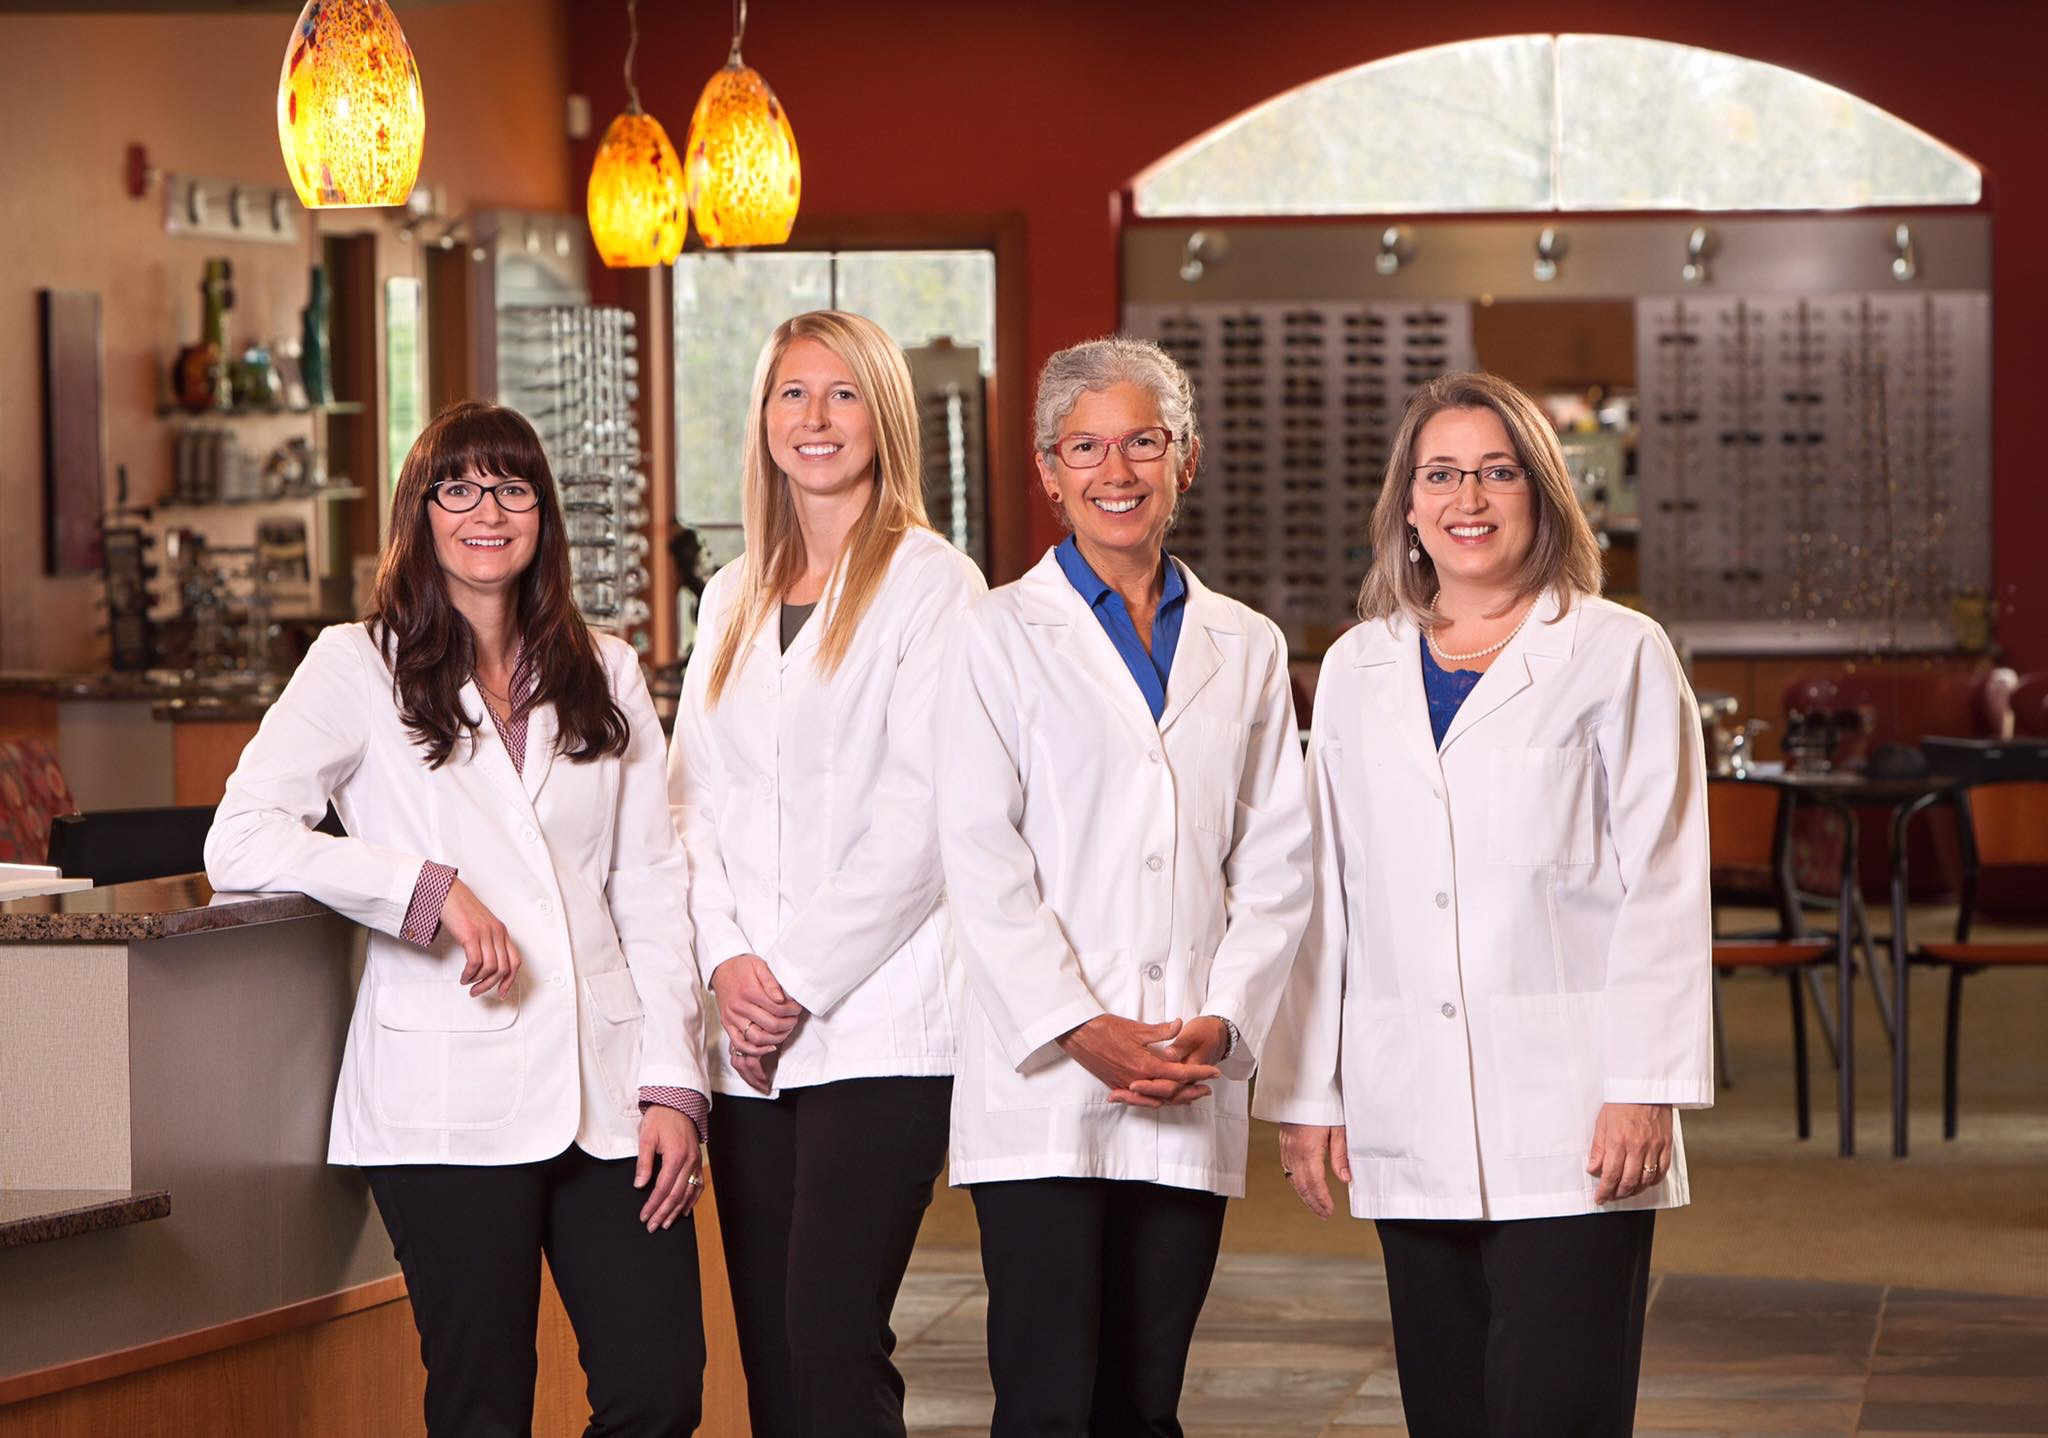 The eye doctors of Relf EyeCare; Dr. Bechthold, Dr. Strom, Dr. Relf, and Dr. Graham.